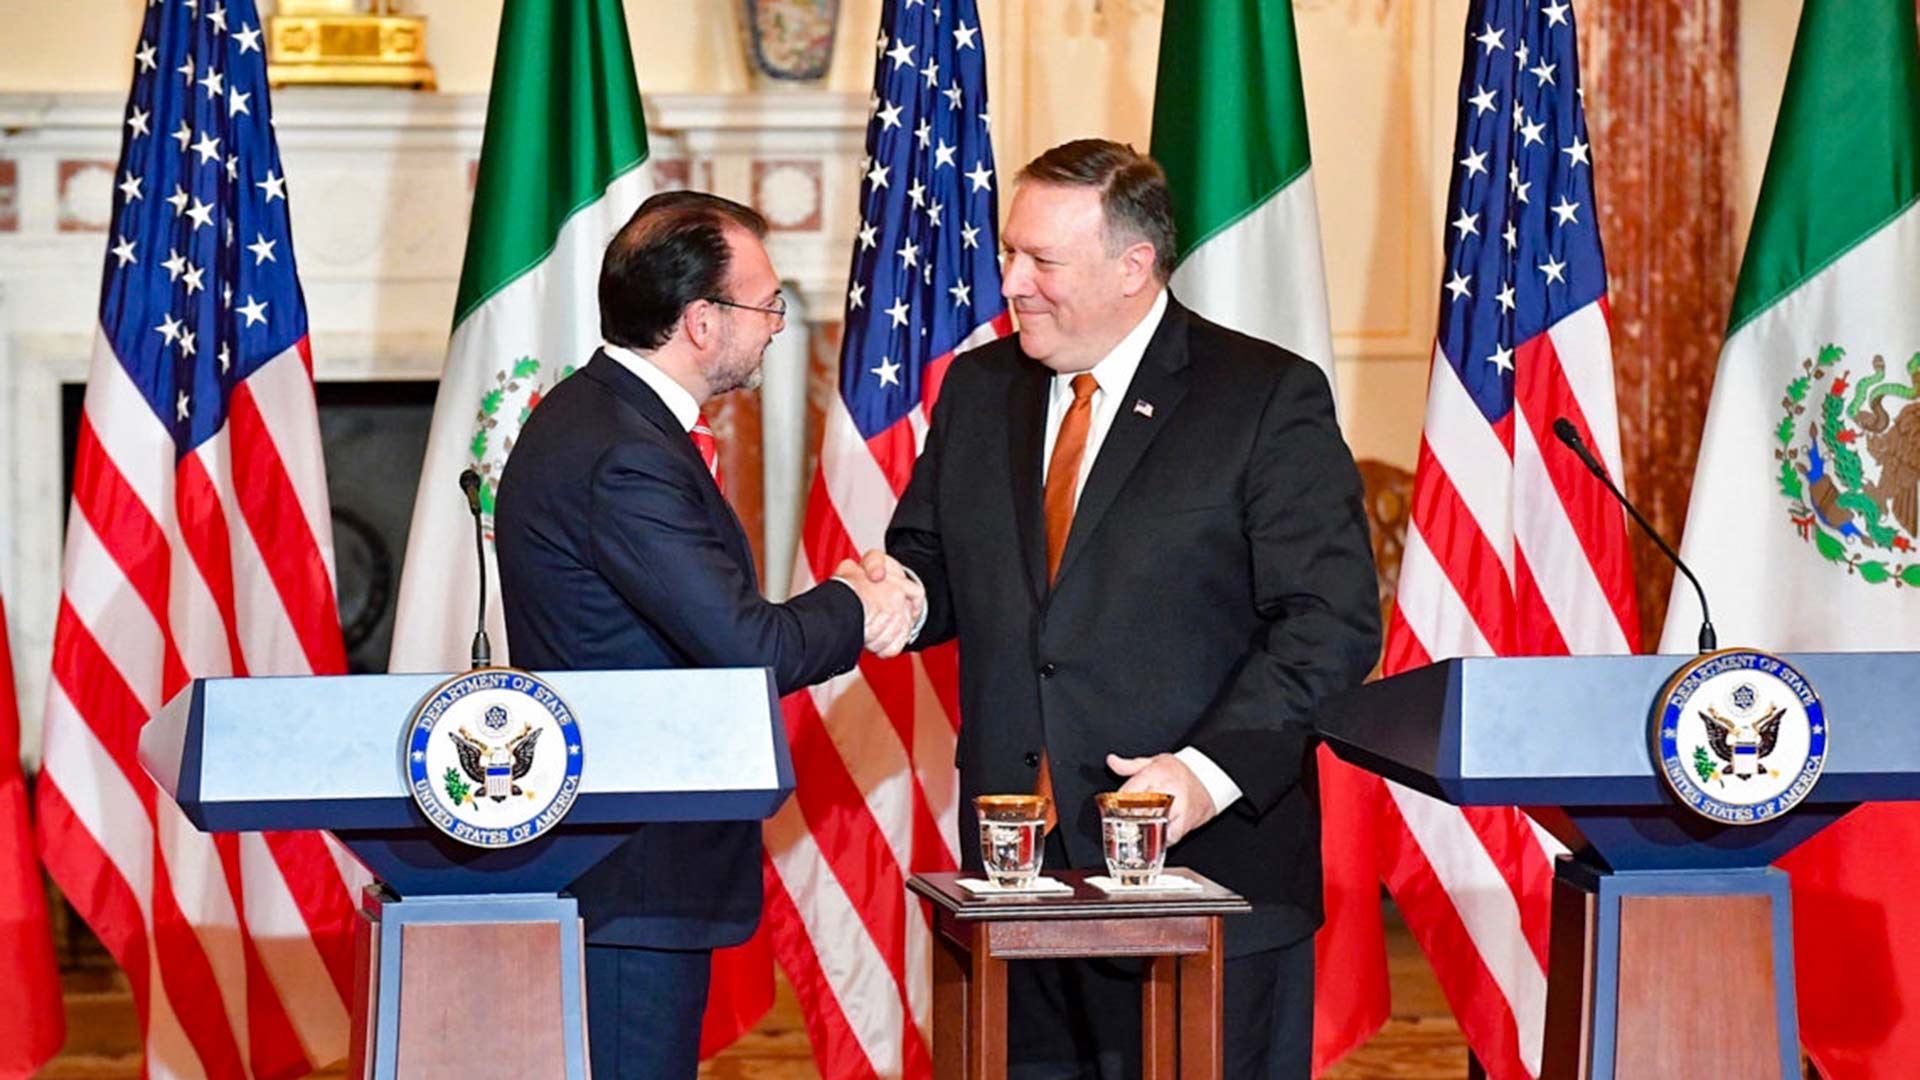 Mexican Foreign Secretary Luis Videgaray, left, and U.S. Secretary of State Mike Pompeo.